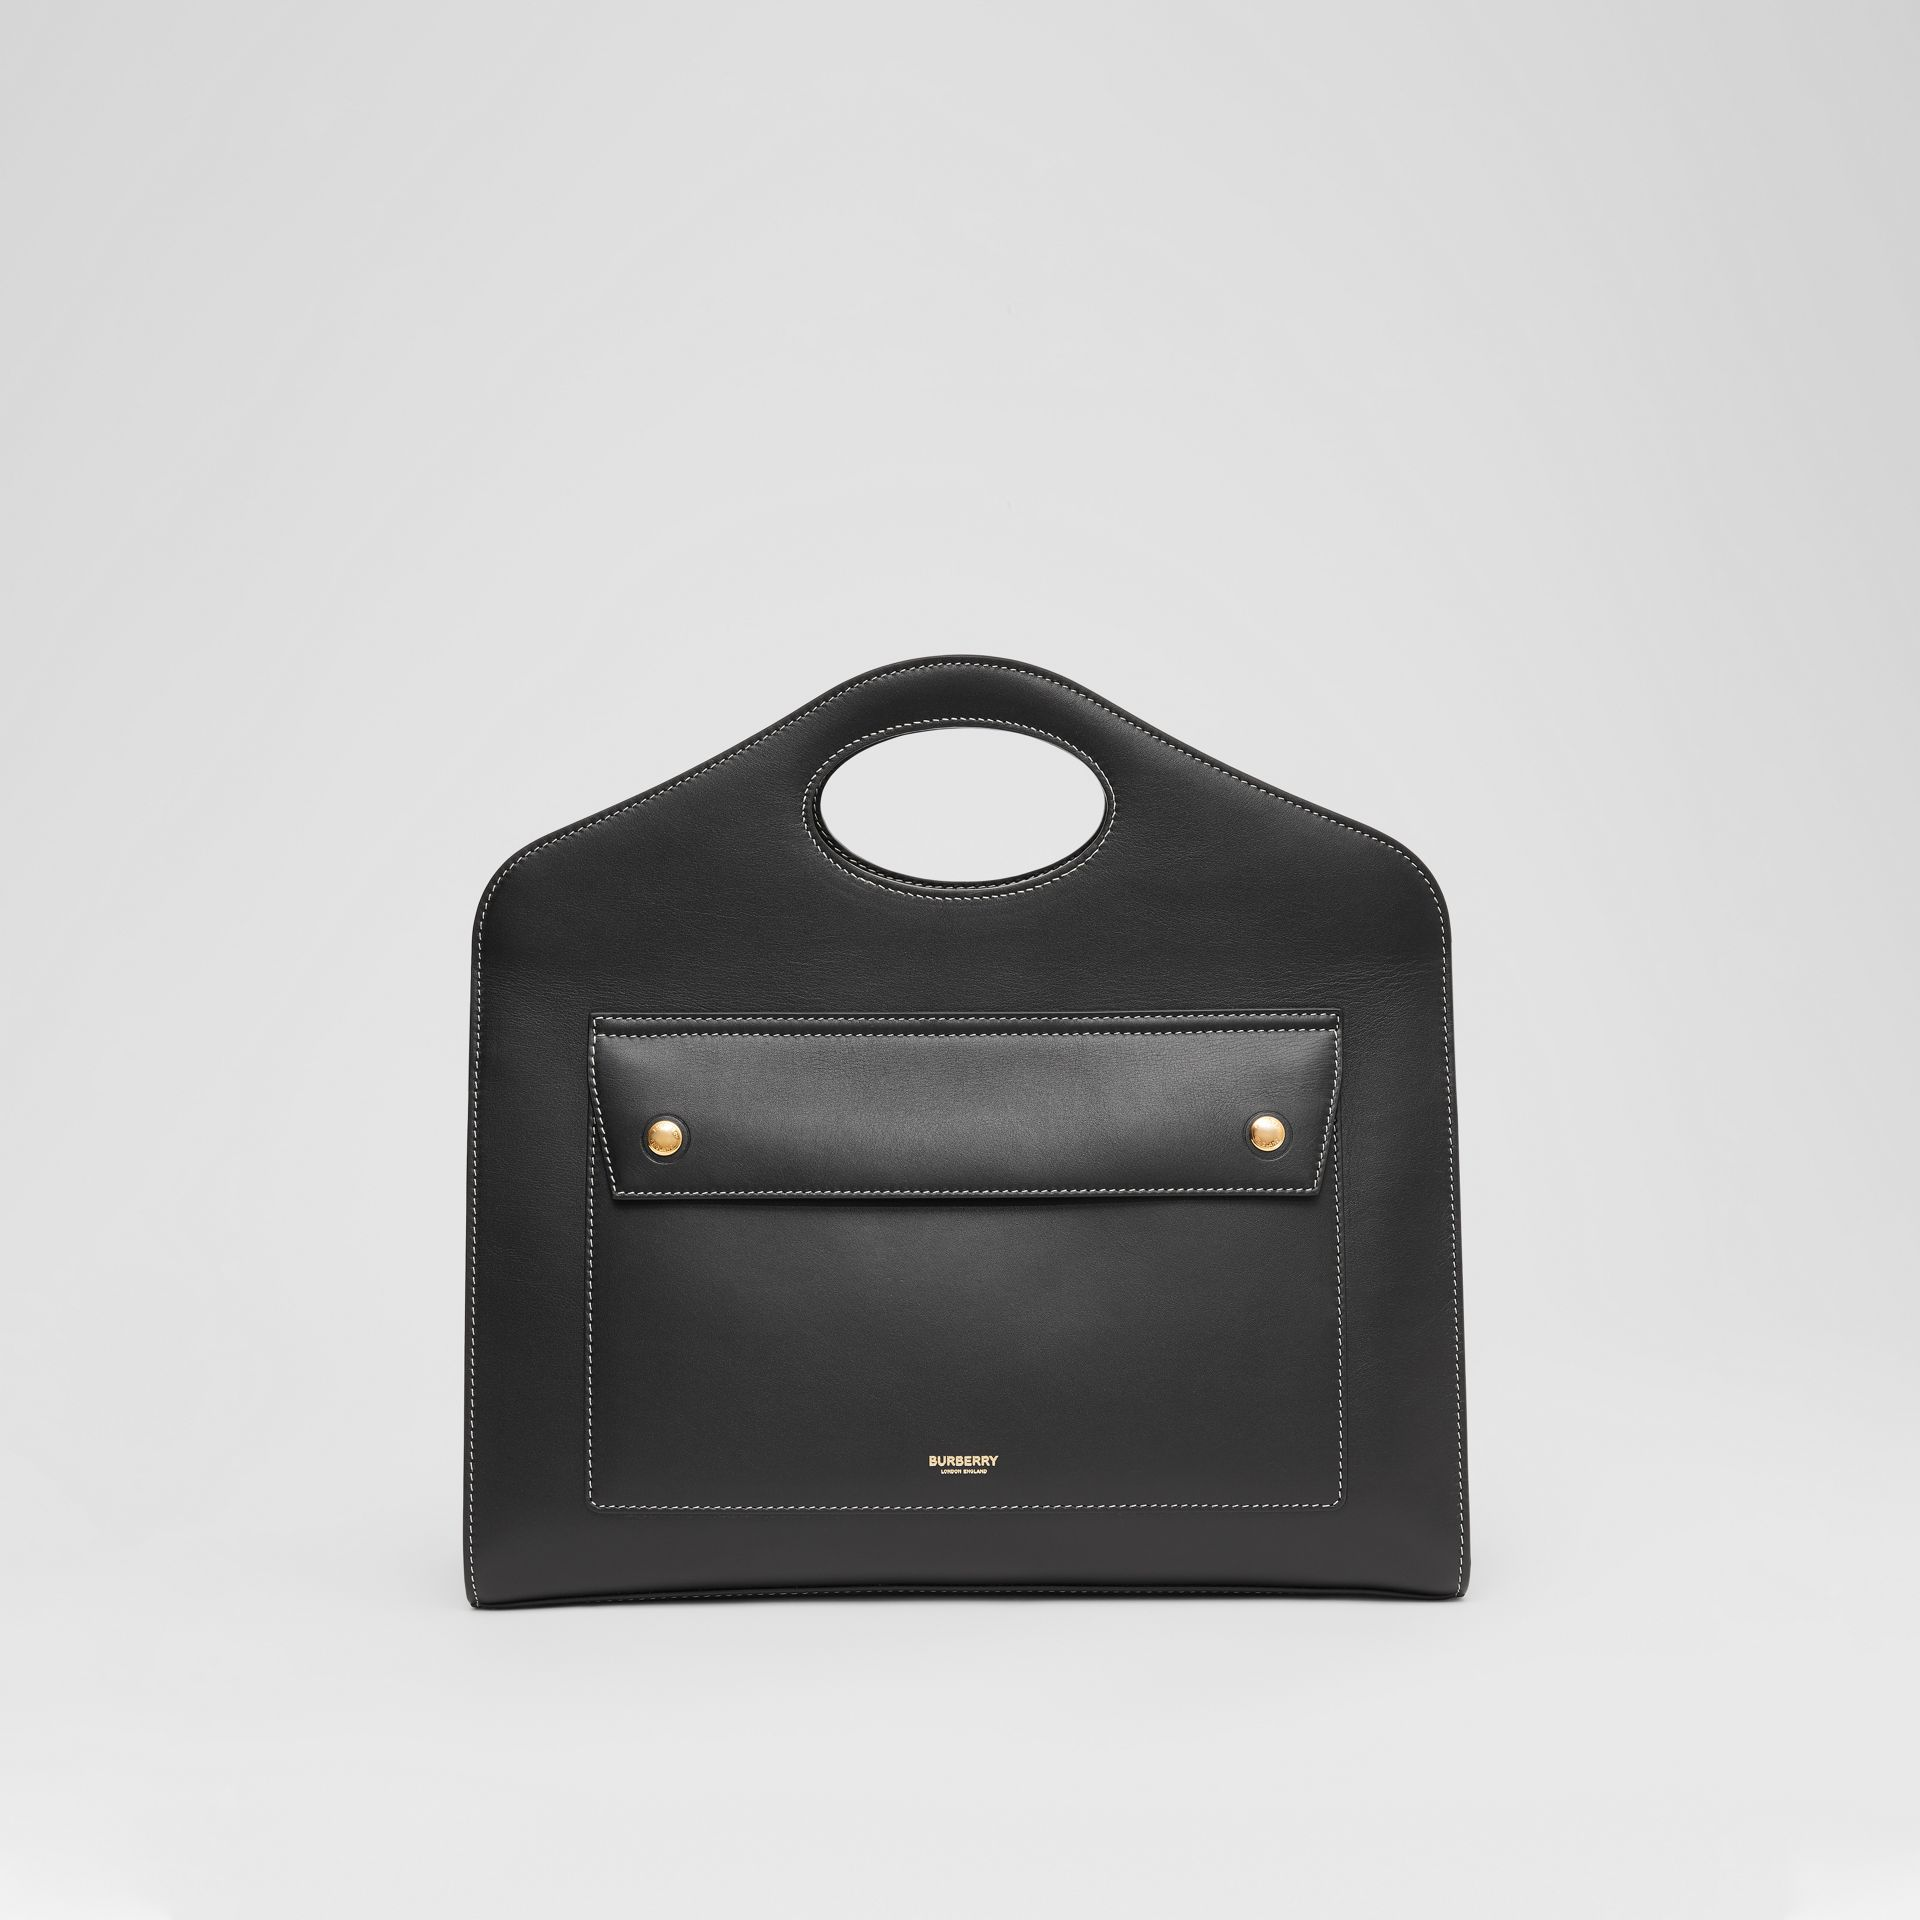 Medium Topstitched Leather Pocket Tote in Black - Women | Burberry - gallery image 0